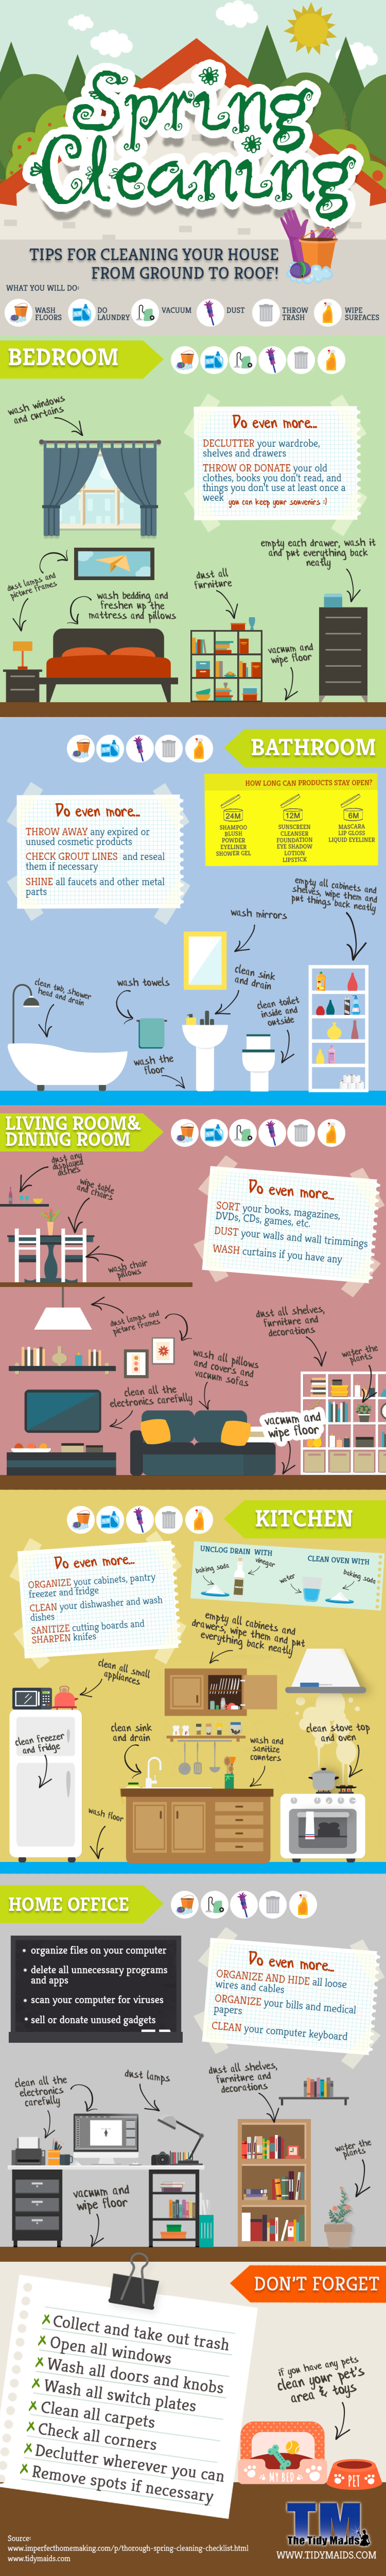 Spring Cleaning Tips And Tricks Infographic